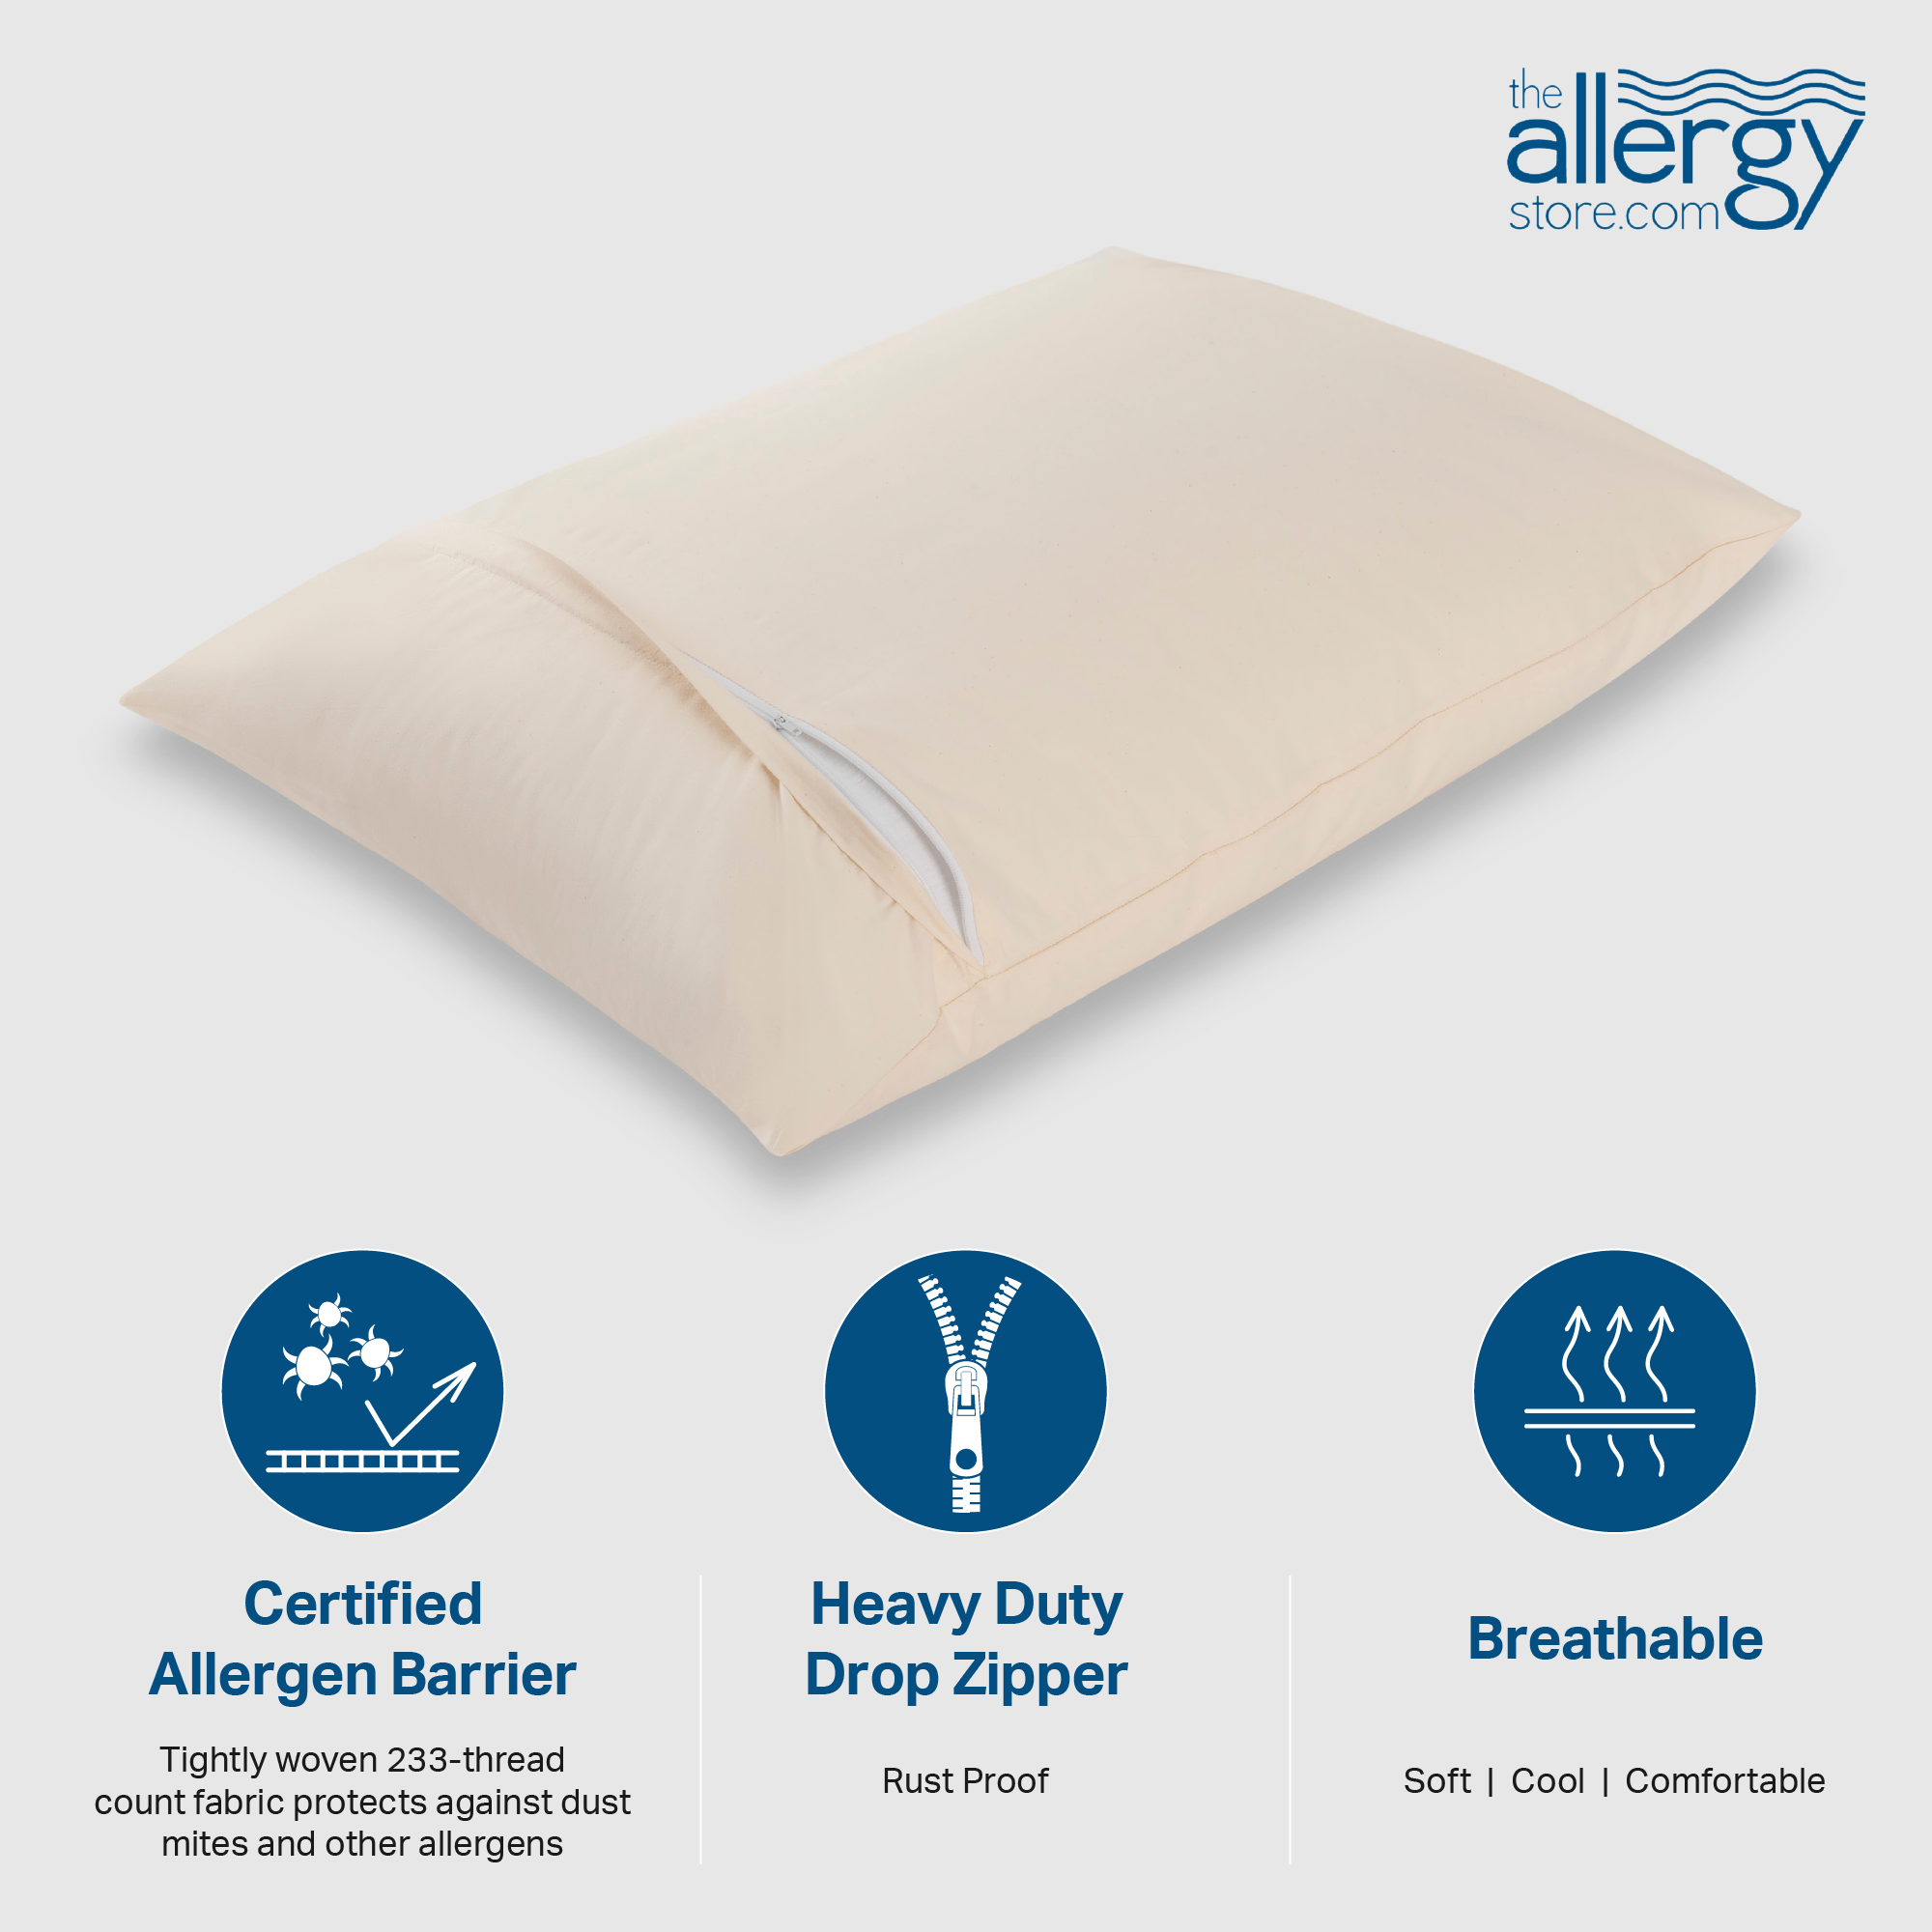 AllergyCare Organic Cotton Pillow Encasing - Buy 2 Get 1 Free